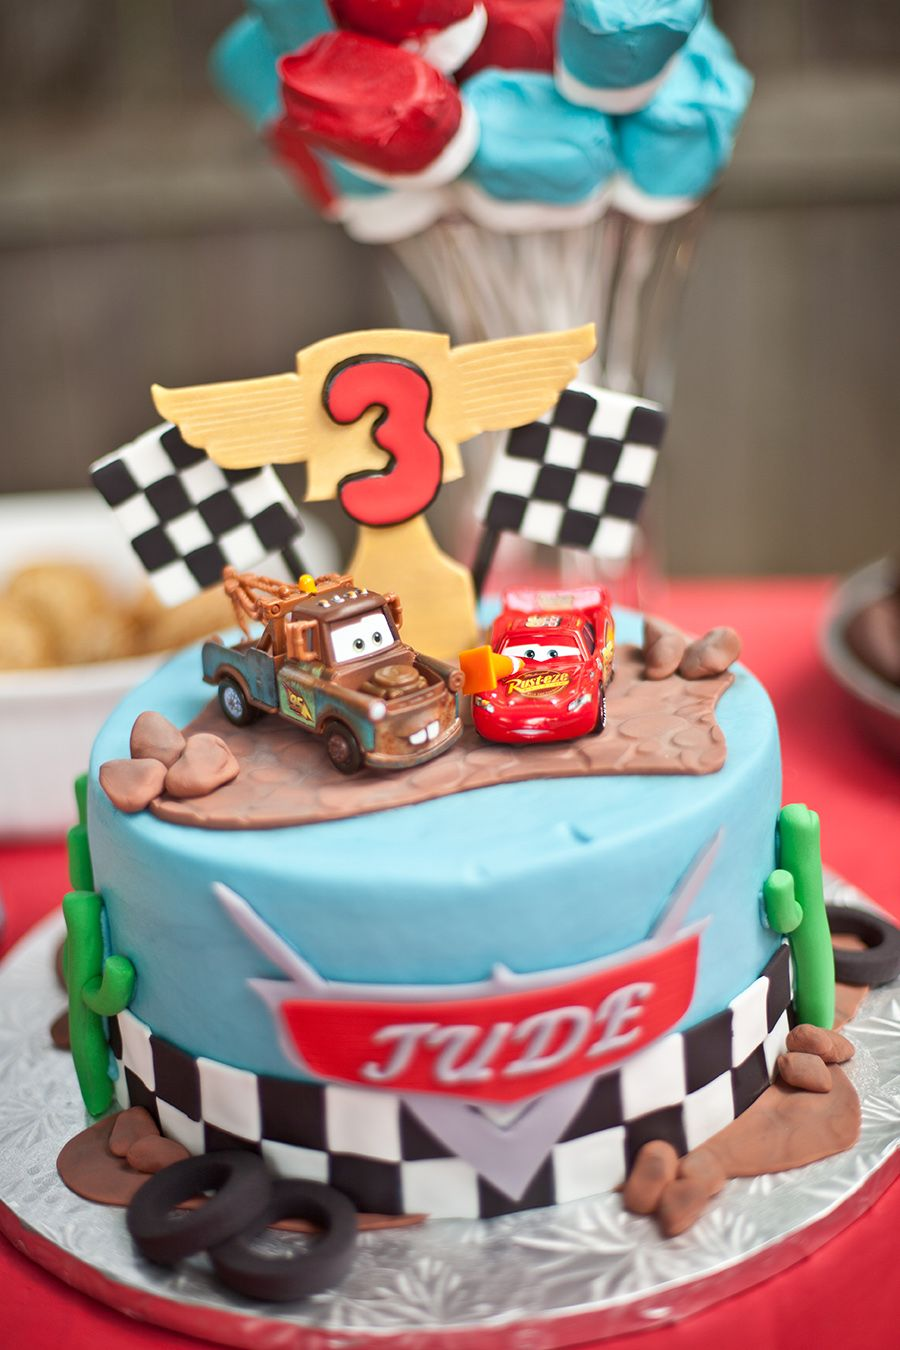 Phenomenal We Heart Parties Cars Themed 3Rd Birthday Party With Images Funny Birthday Cards Online Alyptdamsfinfo